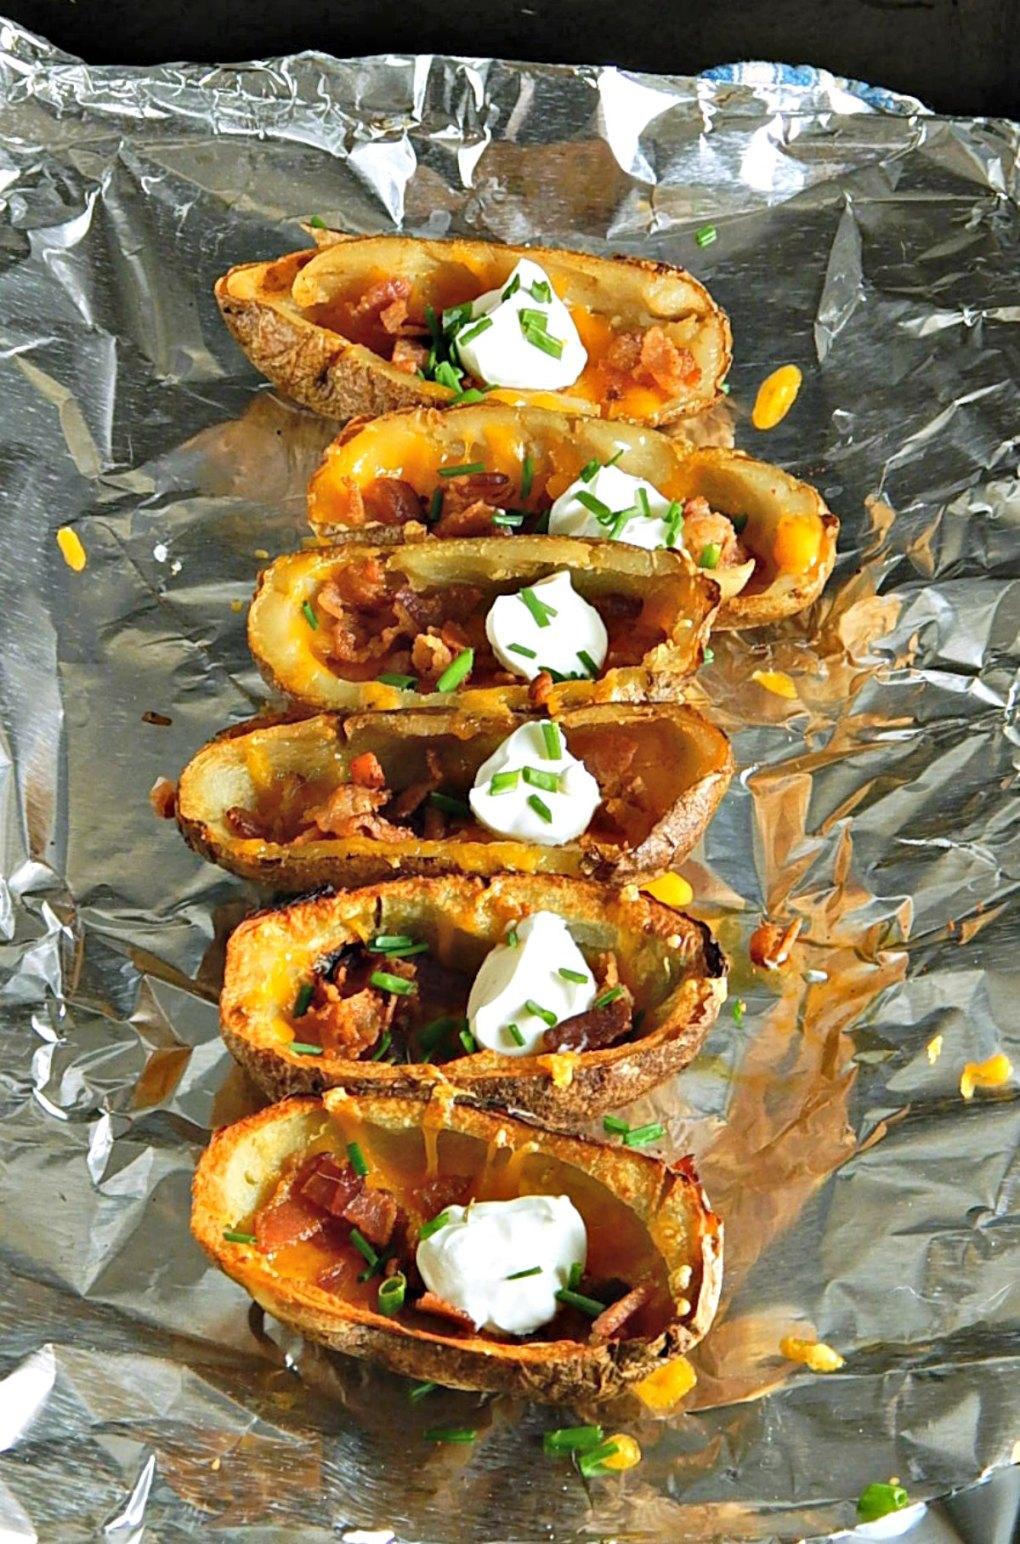 Potato Skins made with Leftover Baked Potatoes